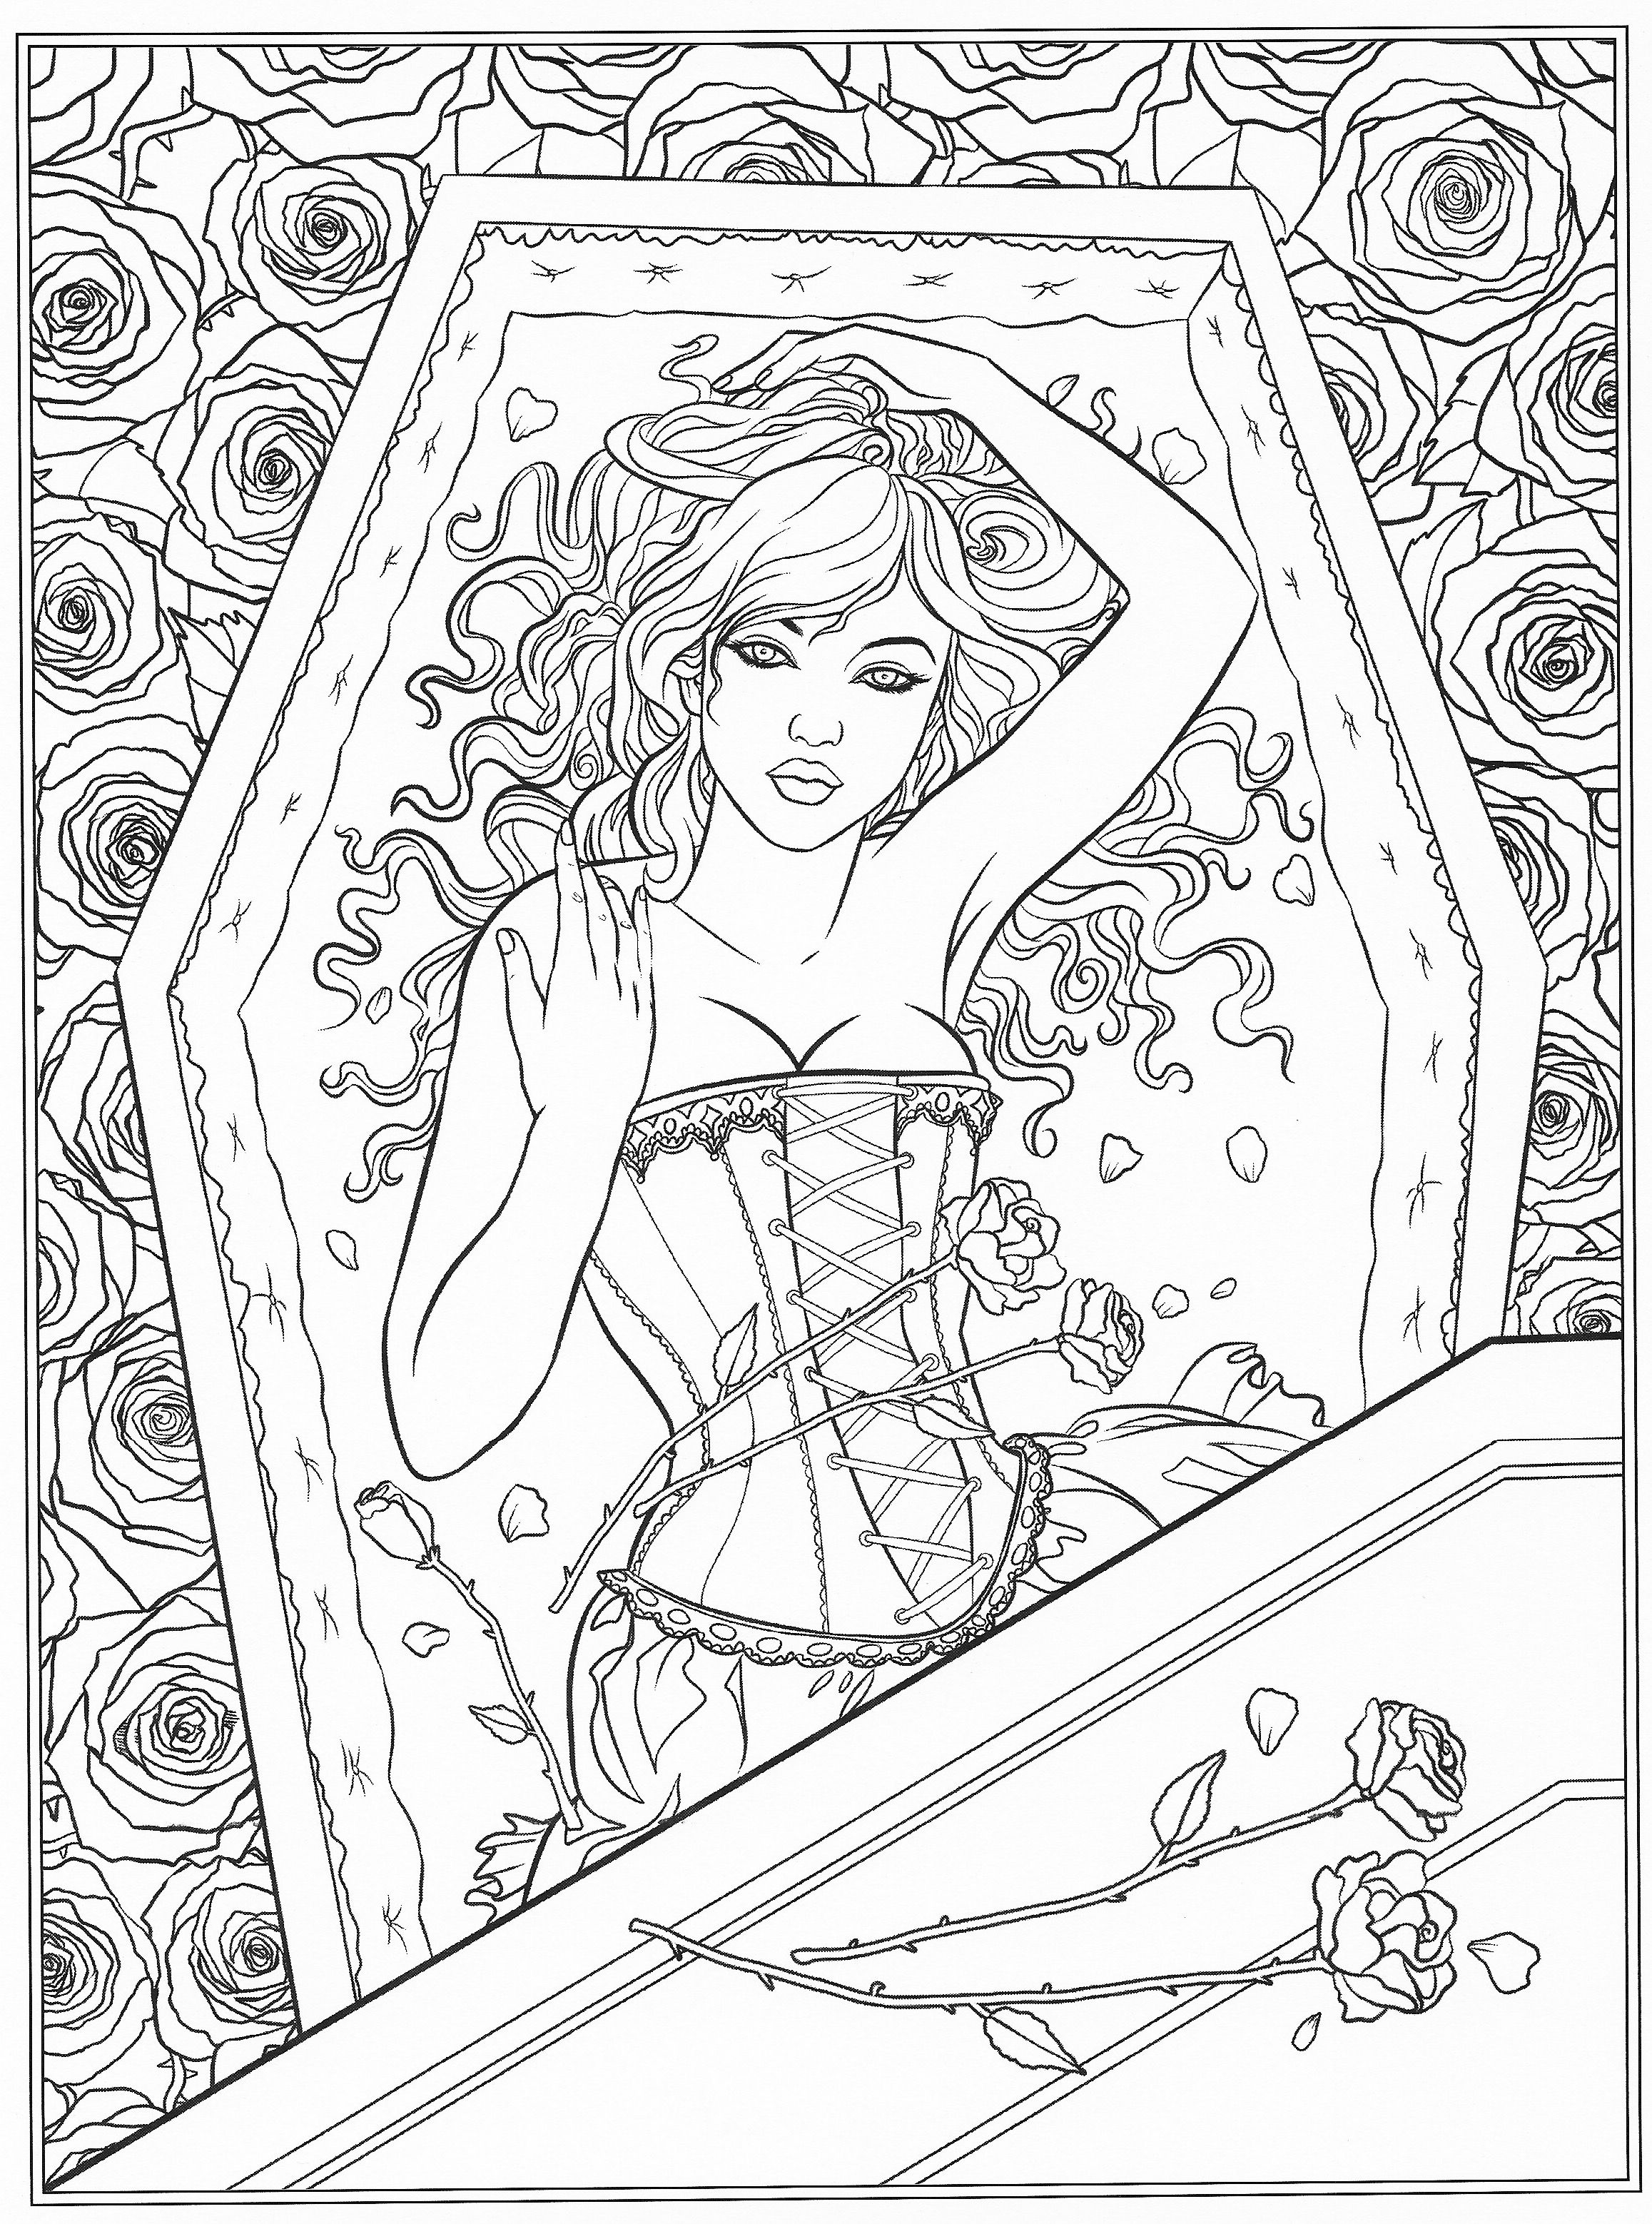 Halloween art therapy coloring pages - Gothic Dark Fantasy Coloring Book Fantasy Art Coloring By Selina Volume